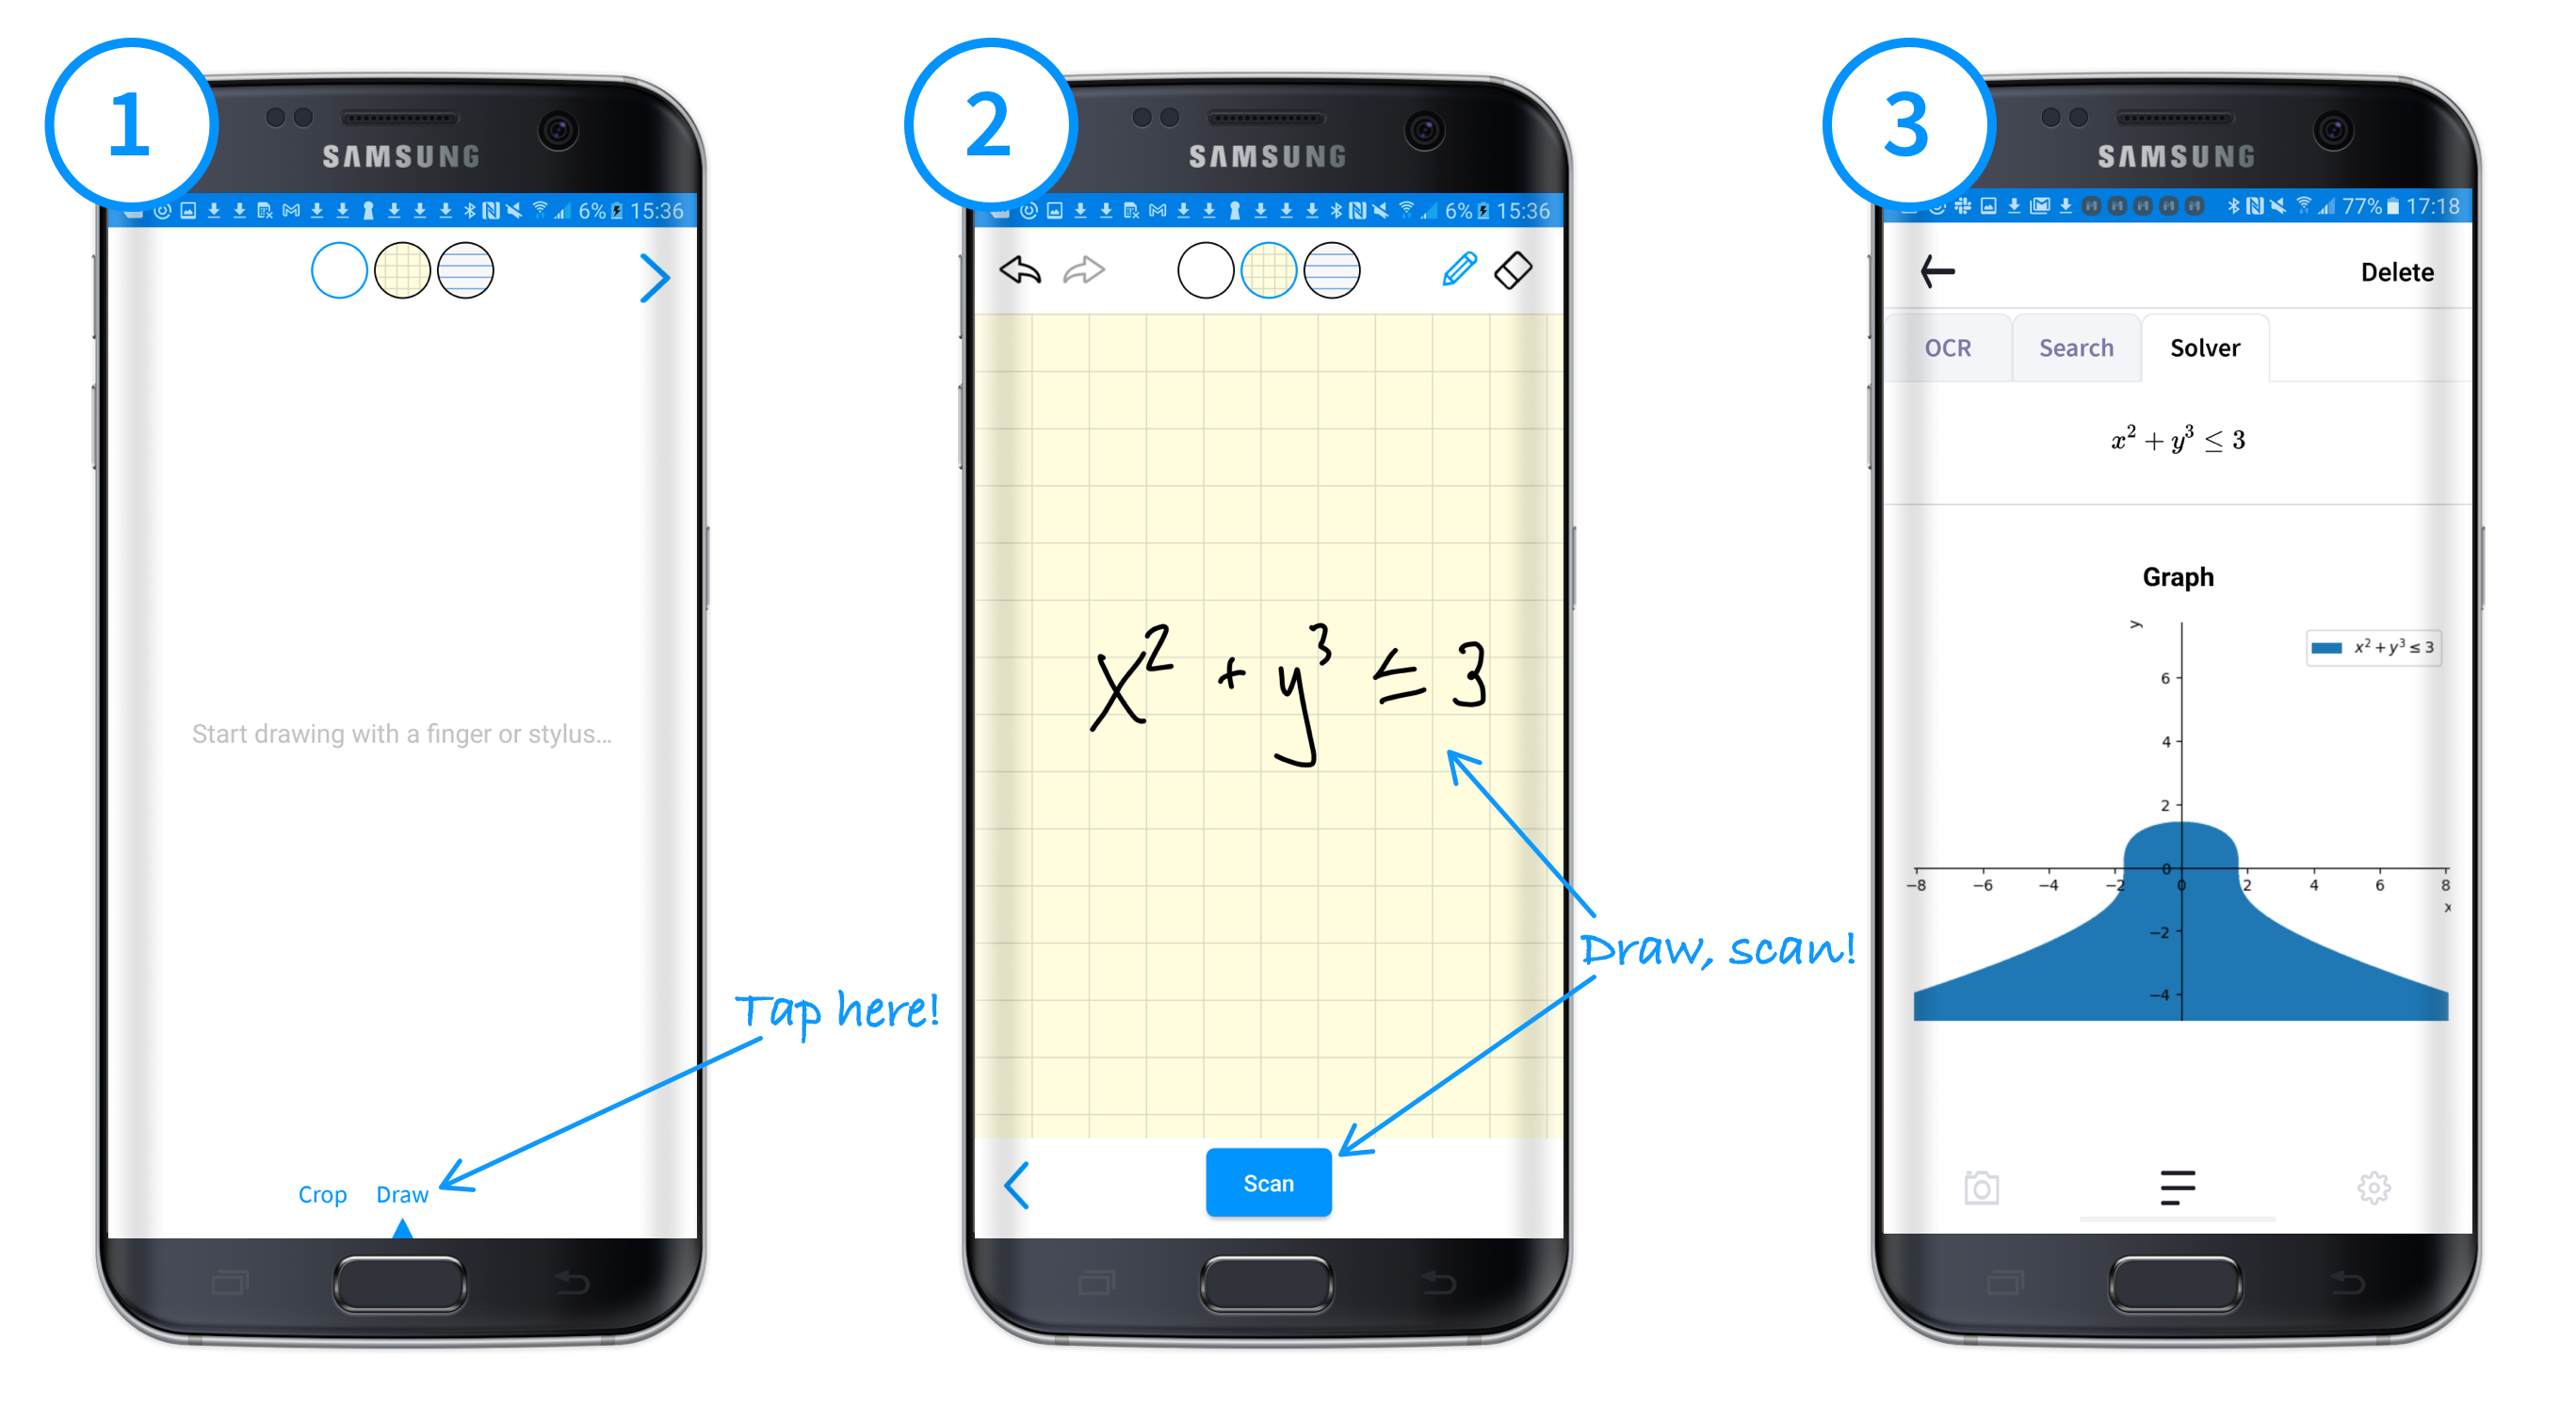 Steps for drawing a Snip of an equation on Android